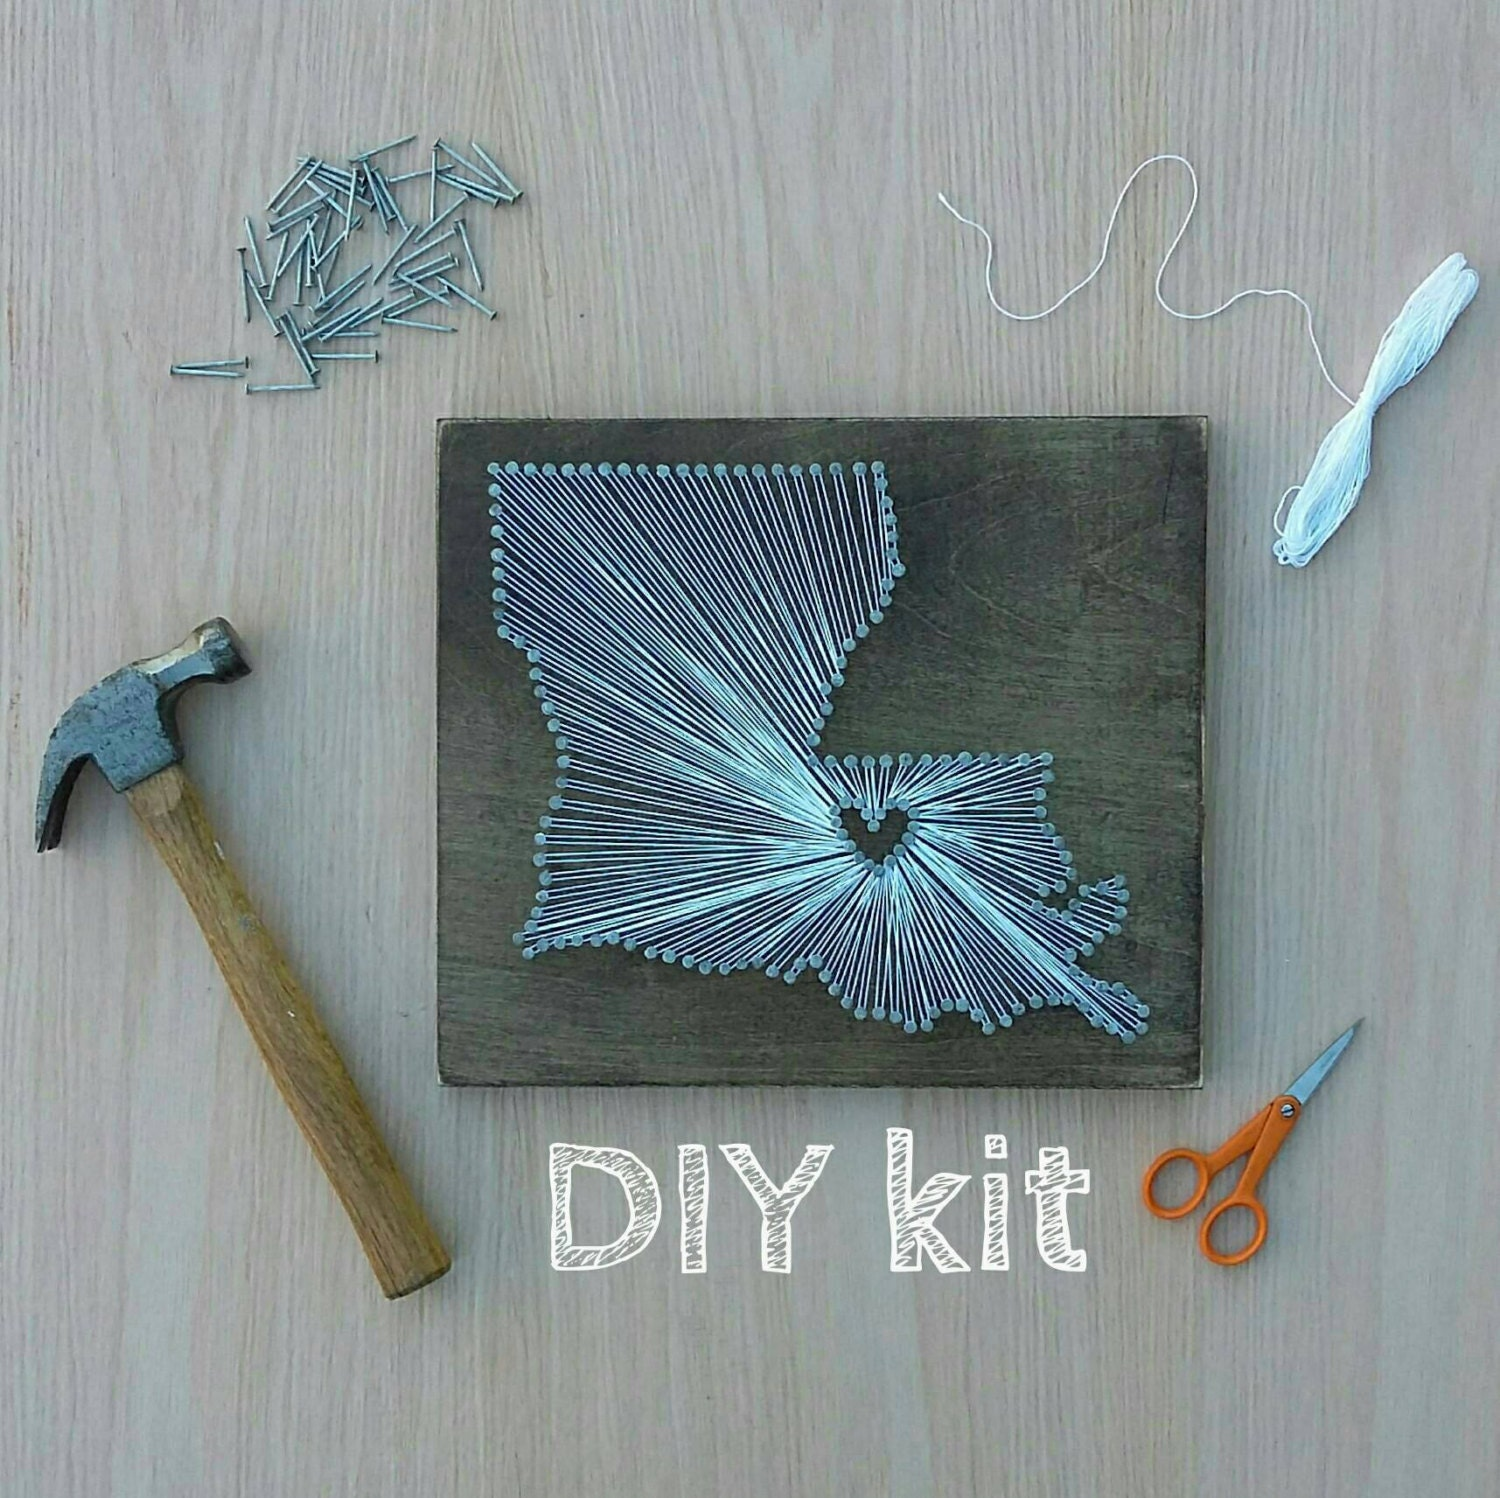 Diy louisiana string art kit state string art kit for Diy nail and string art